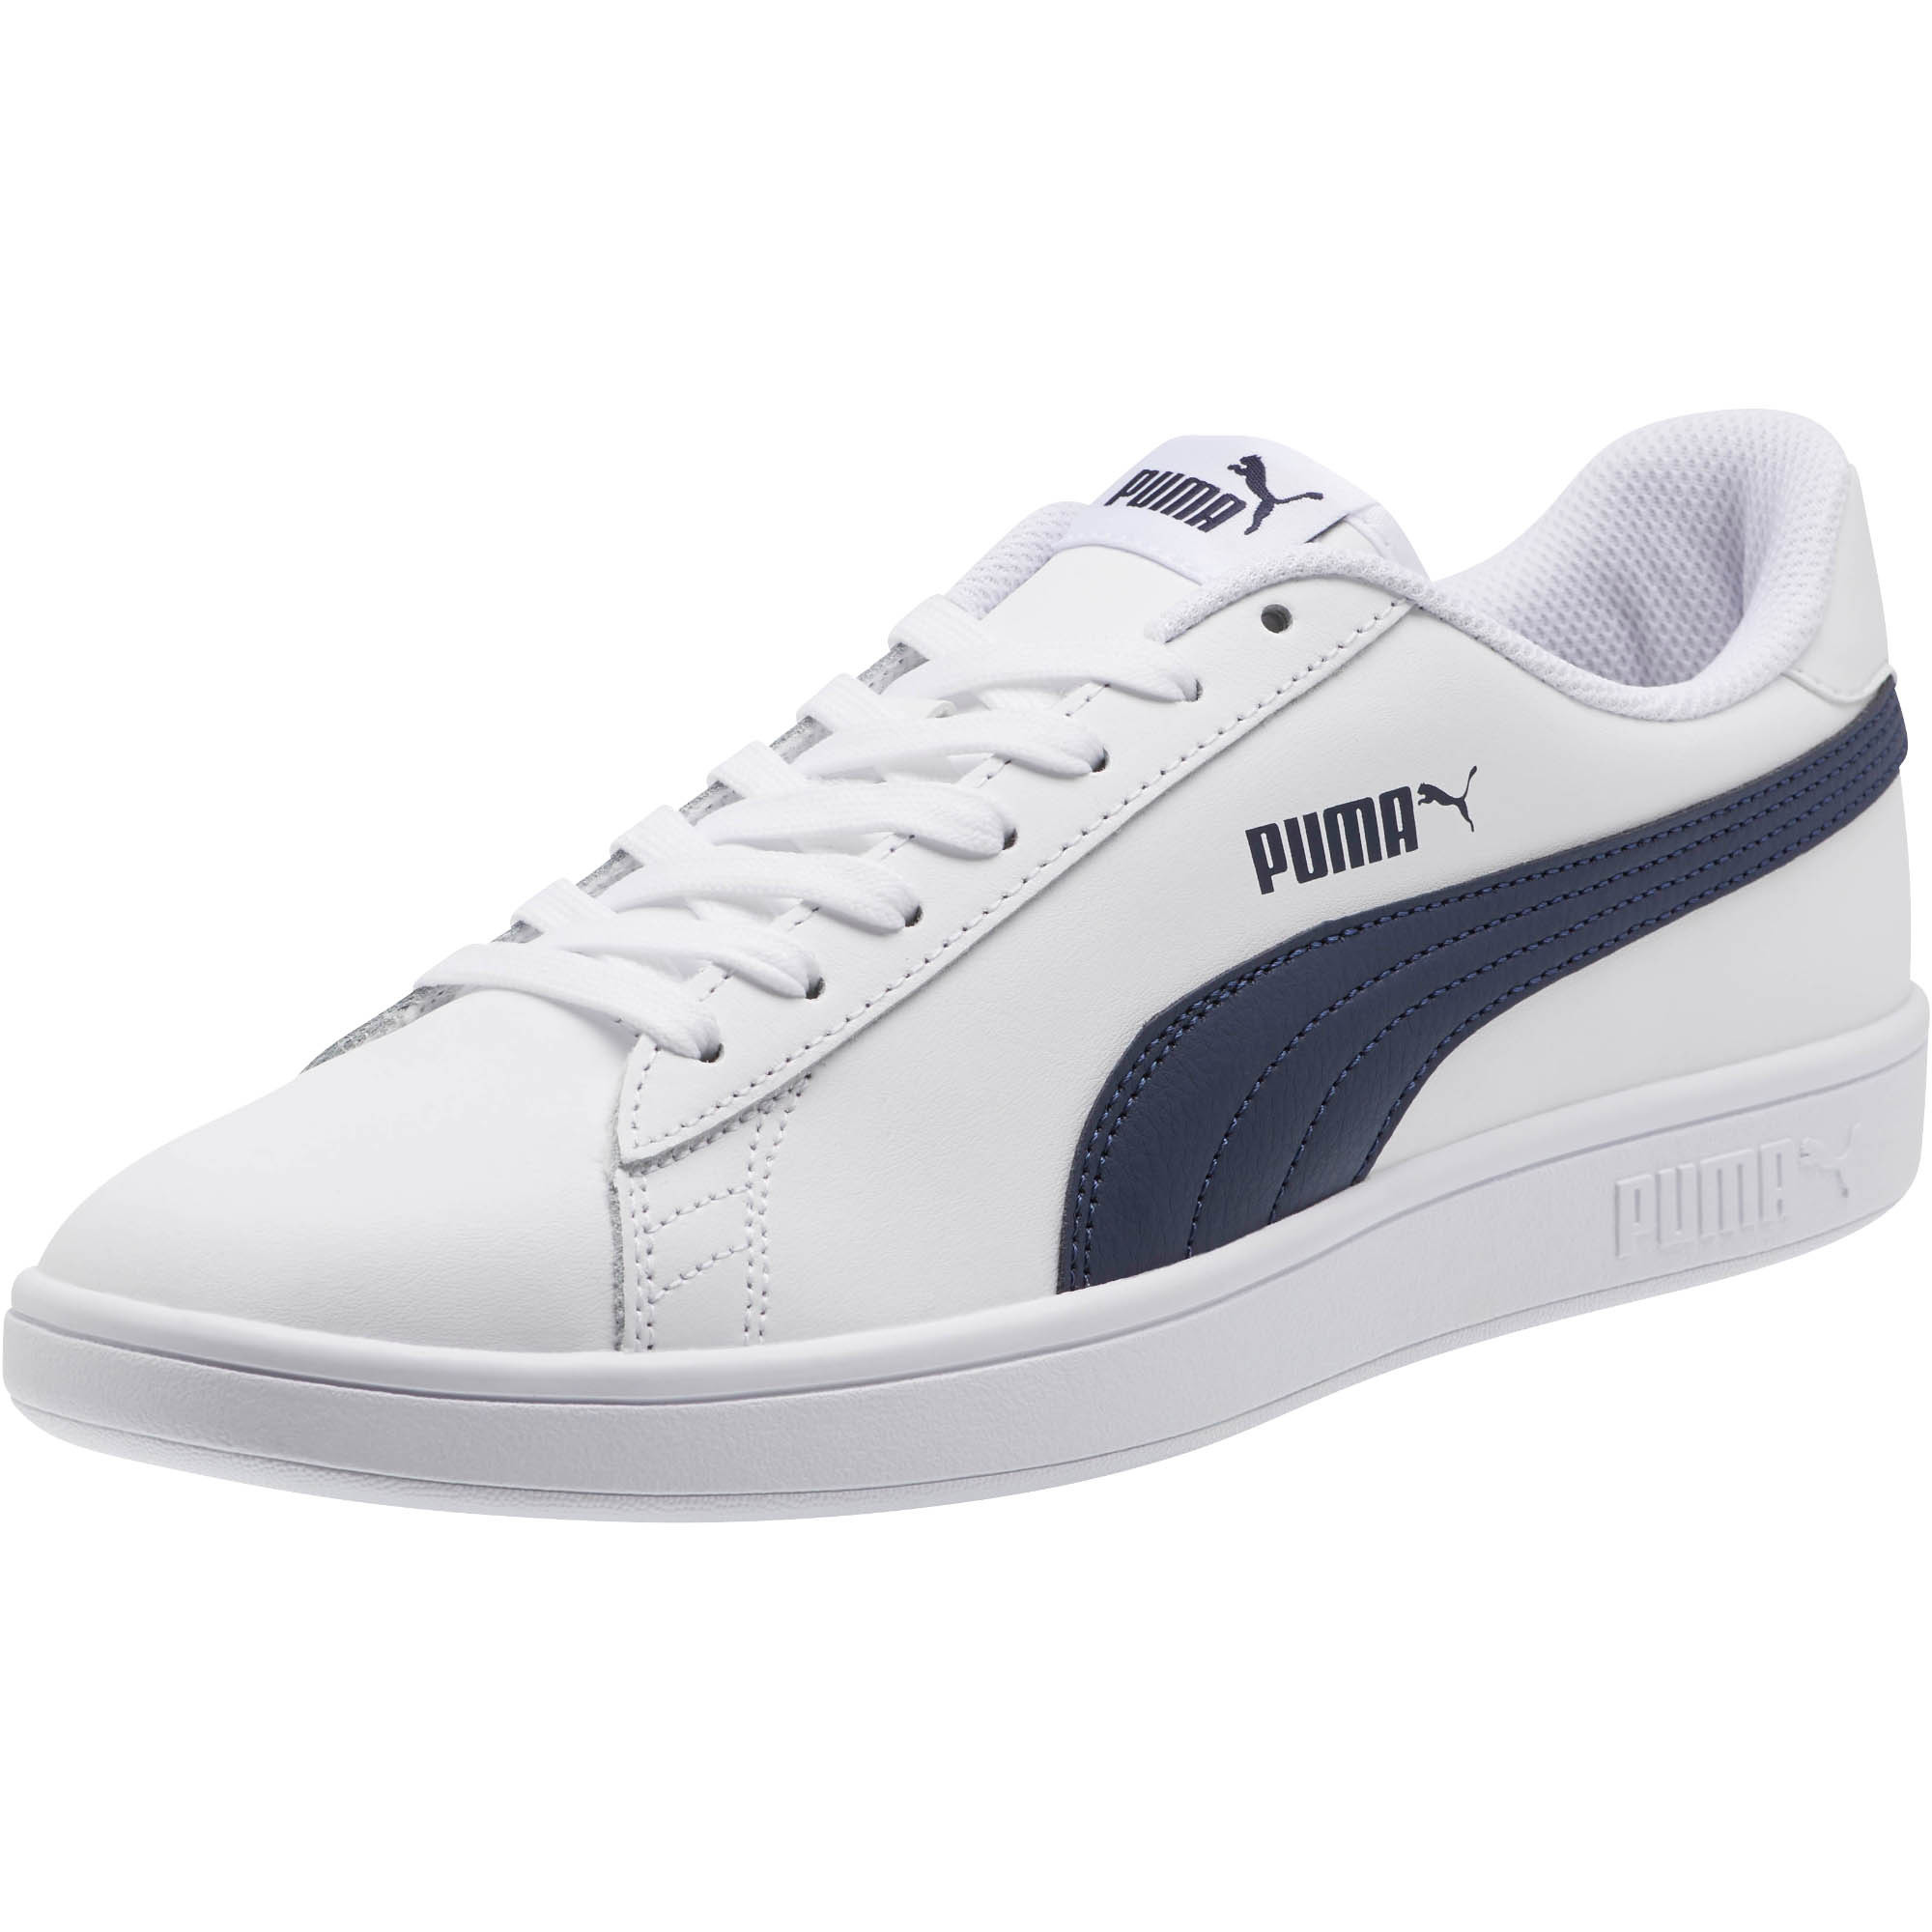 PUMA-PUMA-Smash-v2-Men-039-s-Sneakers-Men-Shoe-Basics thumbnail 14